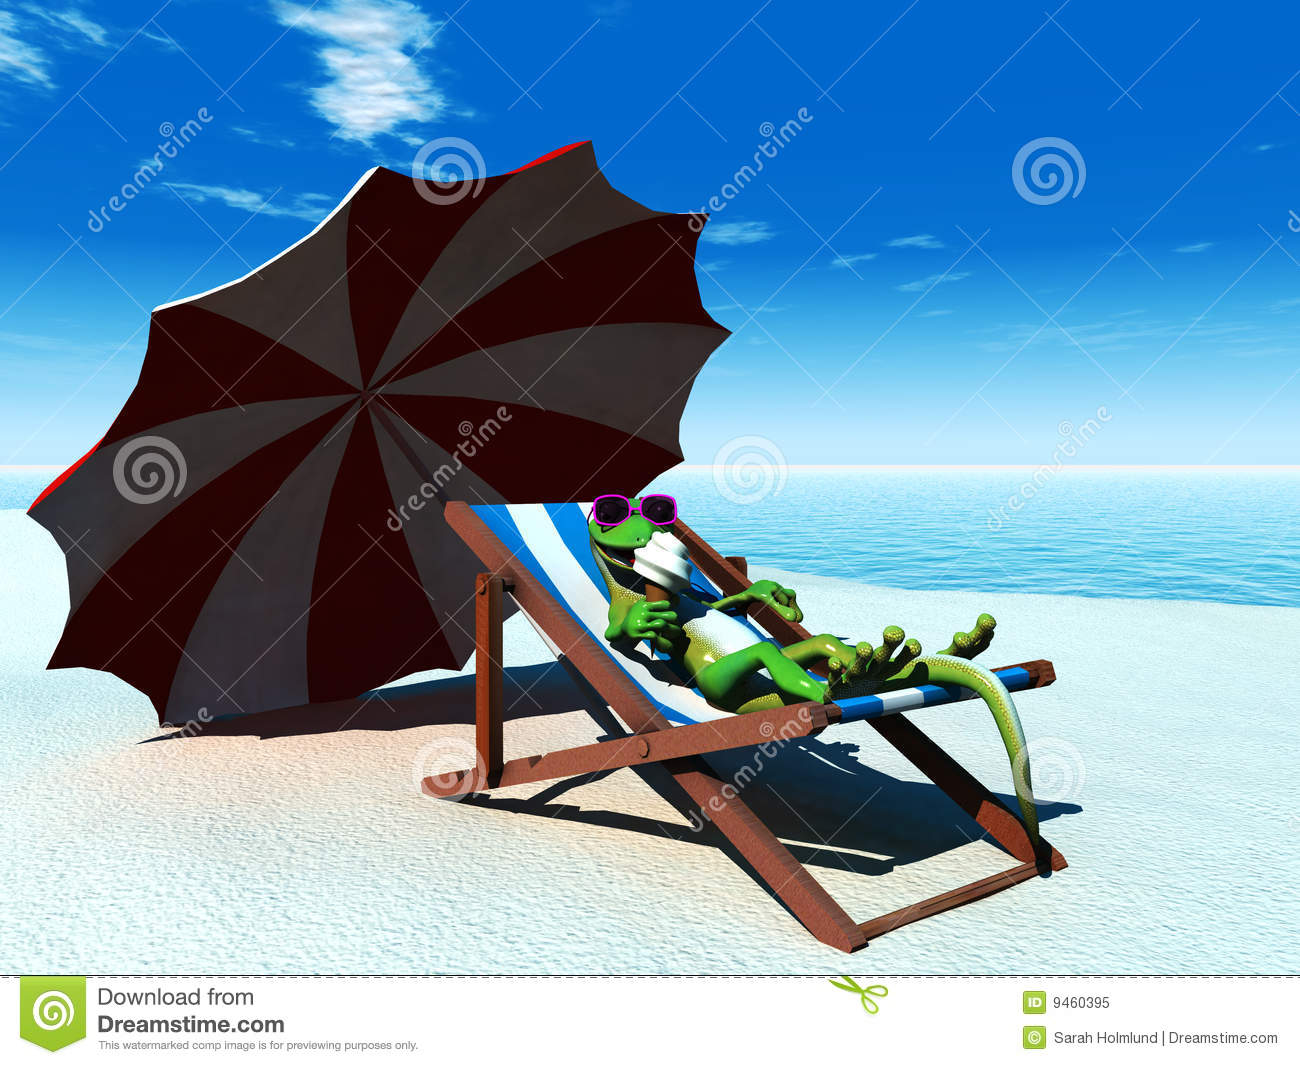 Cartoon Dog Relaxing In Deckchair Royalty Free Stock Image